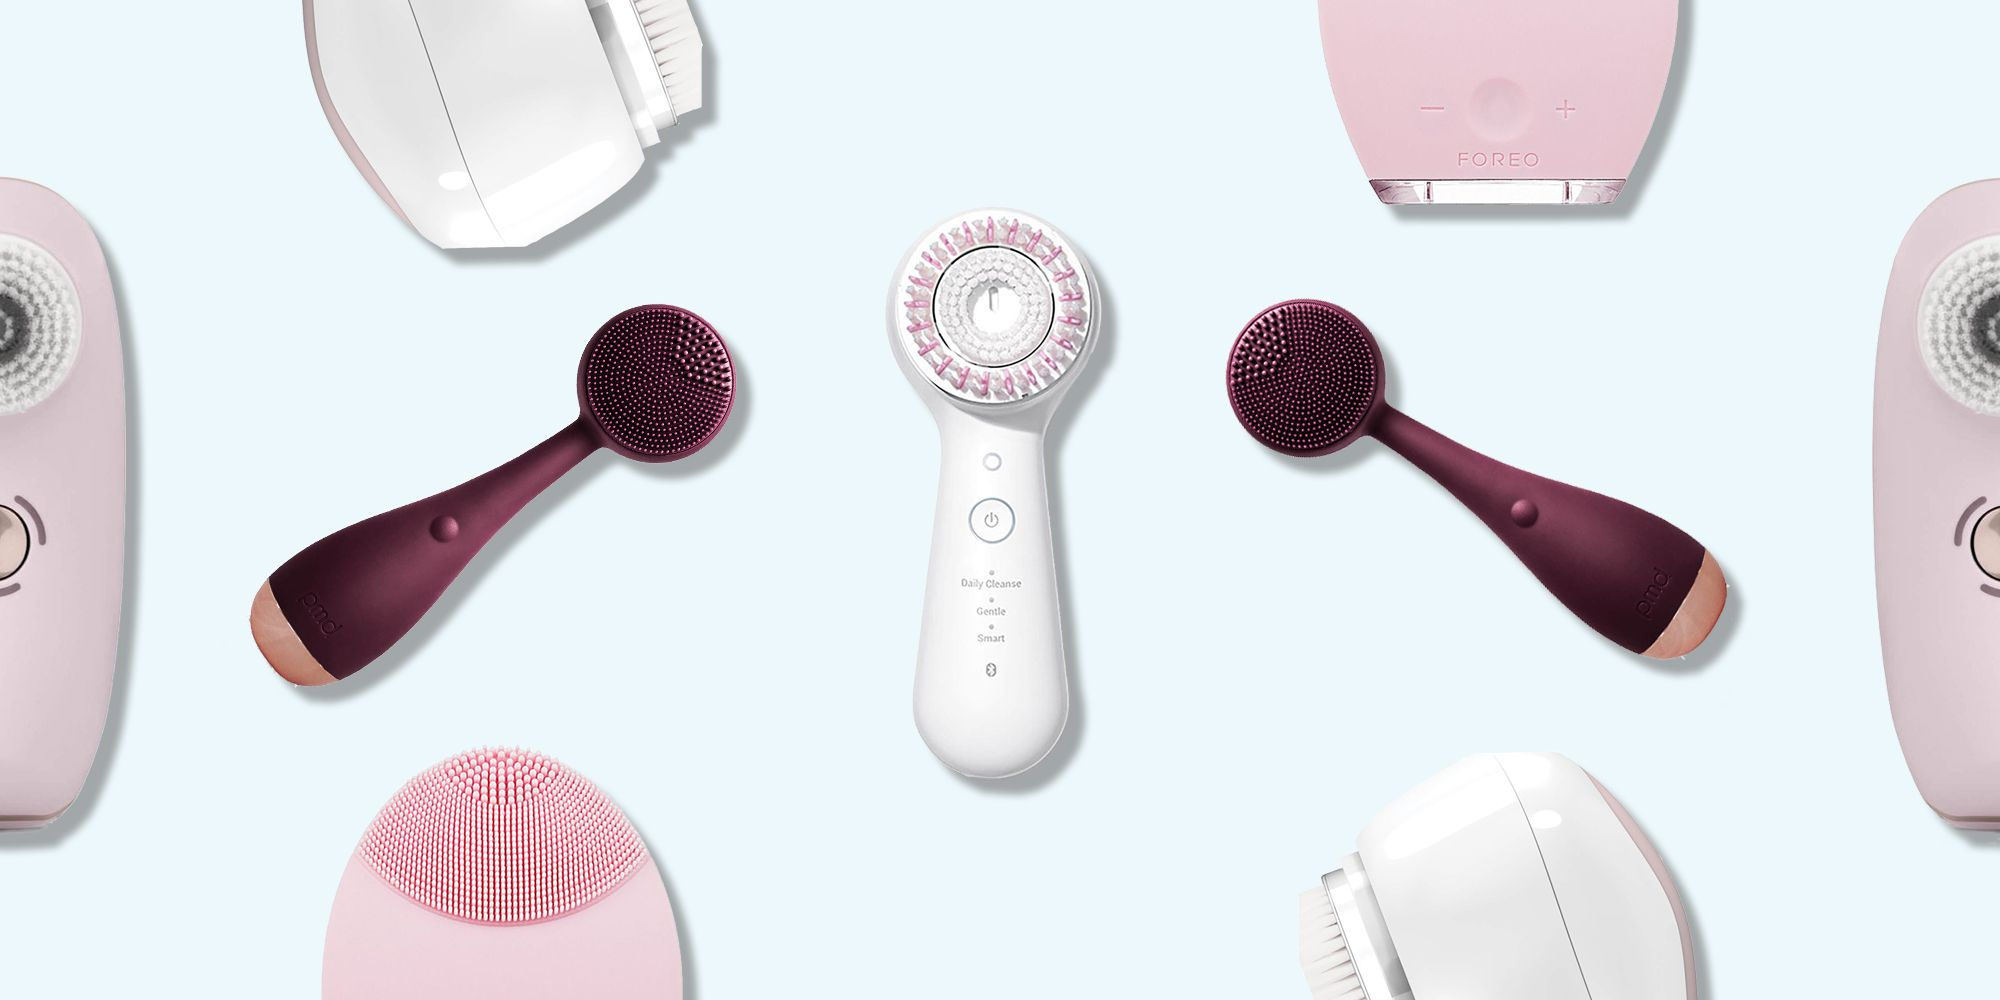 11 Best Face Cleansing Brushes Top Facial Cleansing Brush Reviews